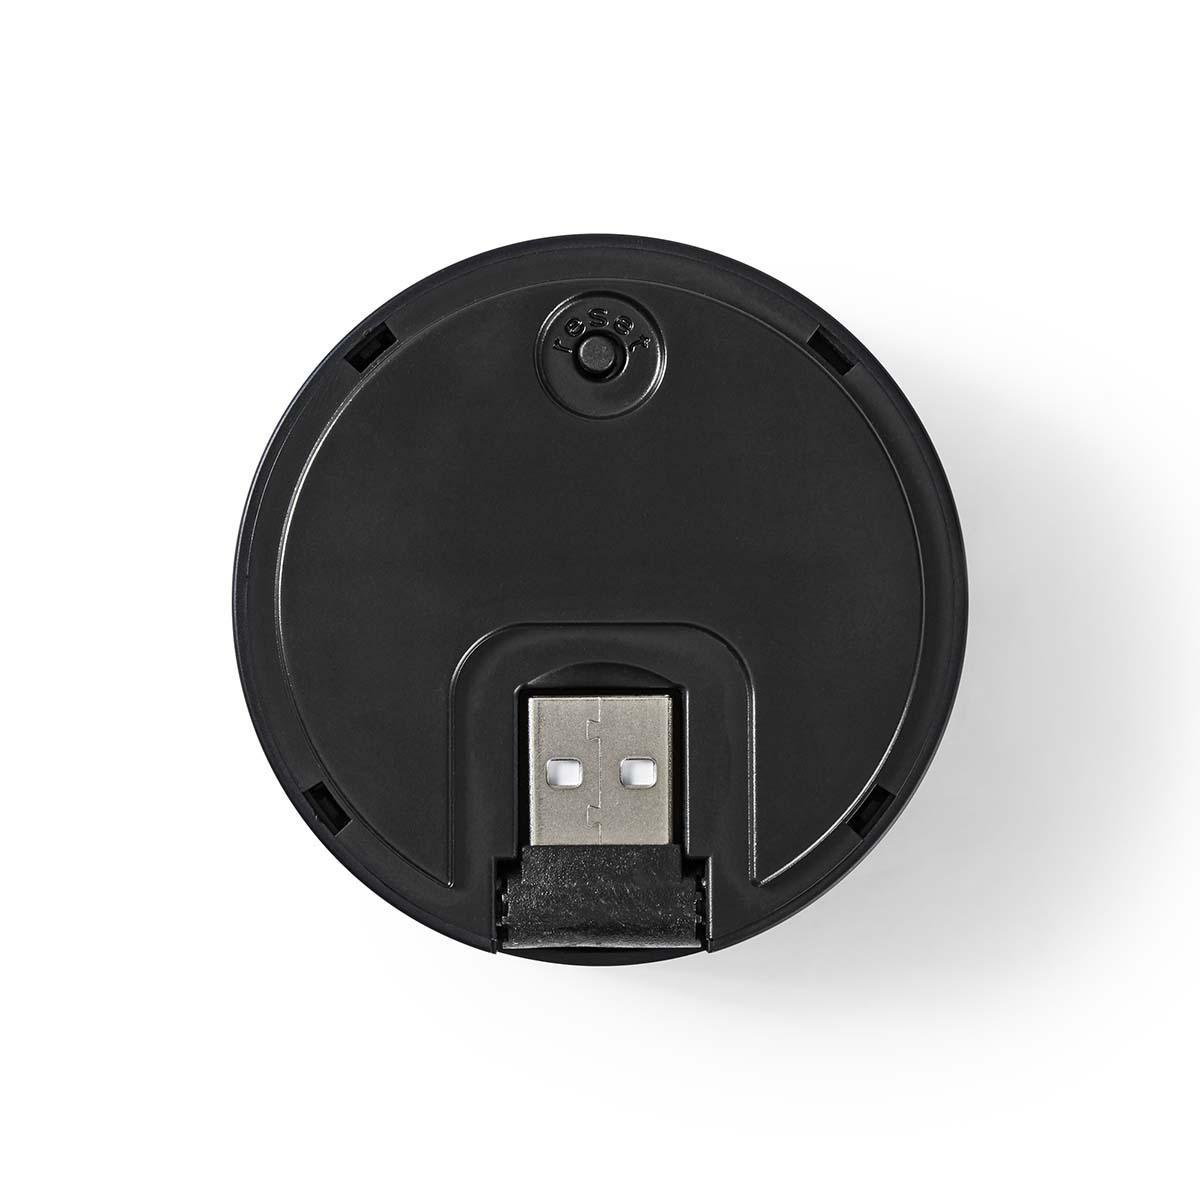 Expand your smart video doorbell with this wireless doorbell receiver. So you always know that someone is at your door, even if your smartphone is not within reach or off. Plug the doorbell receiver into a USB port and select melody and volume via the Sma